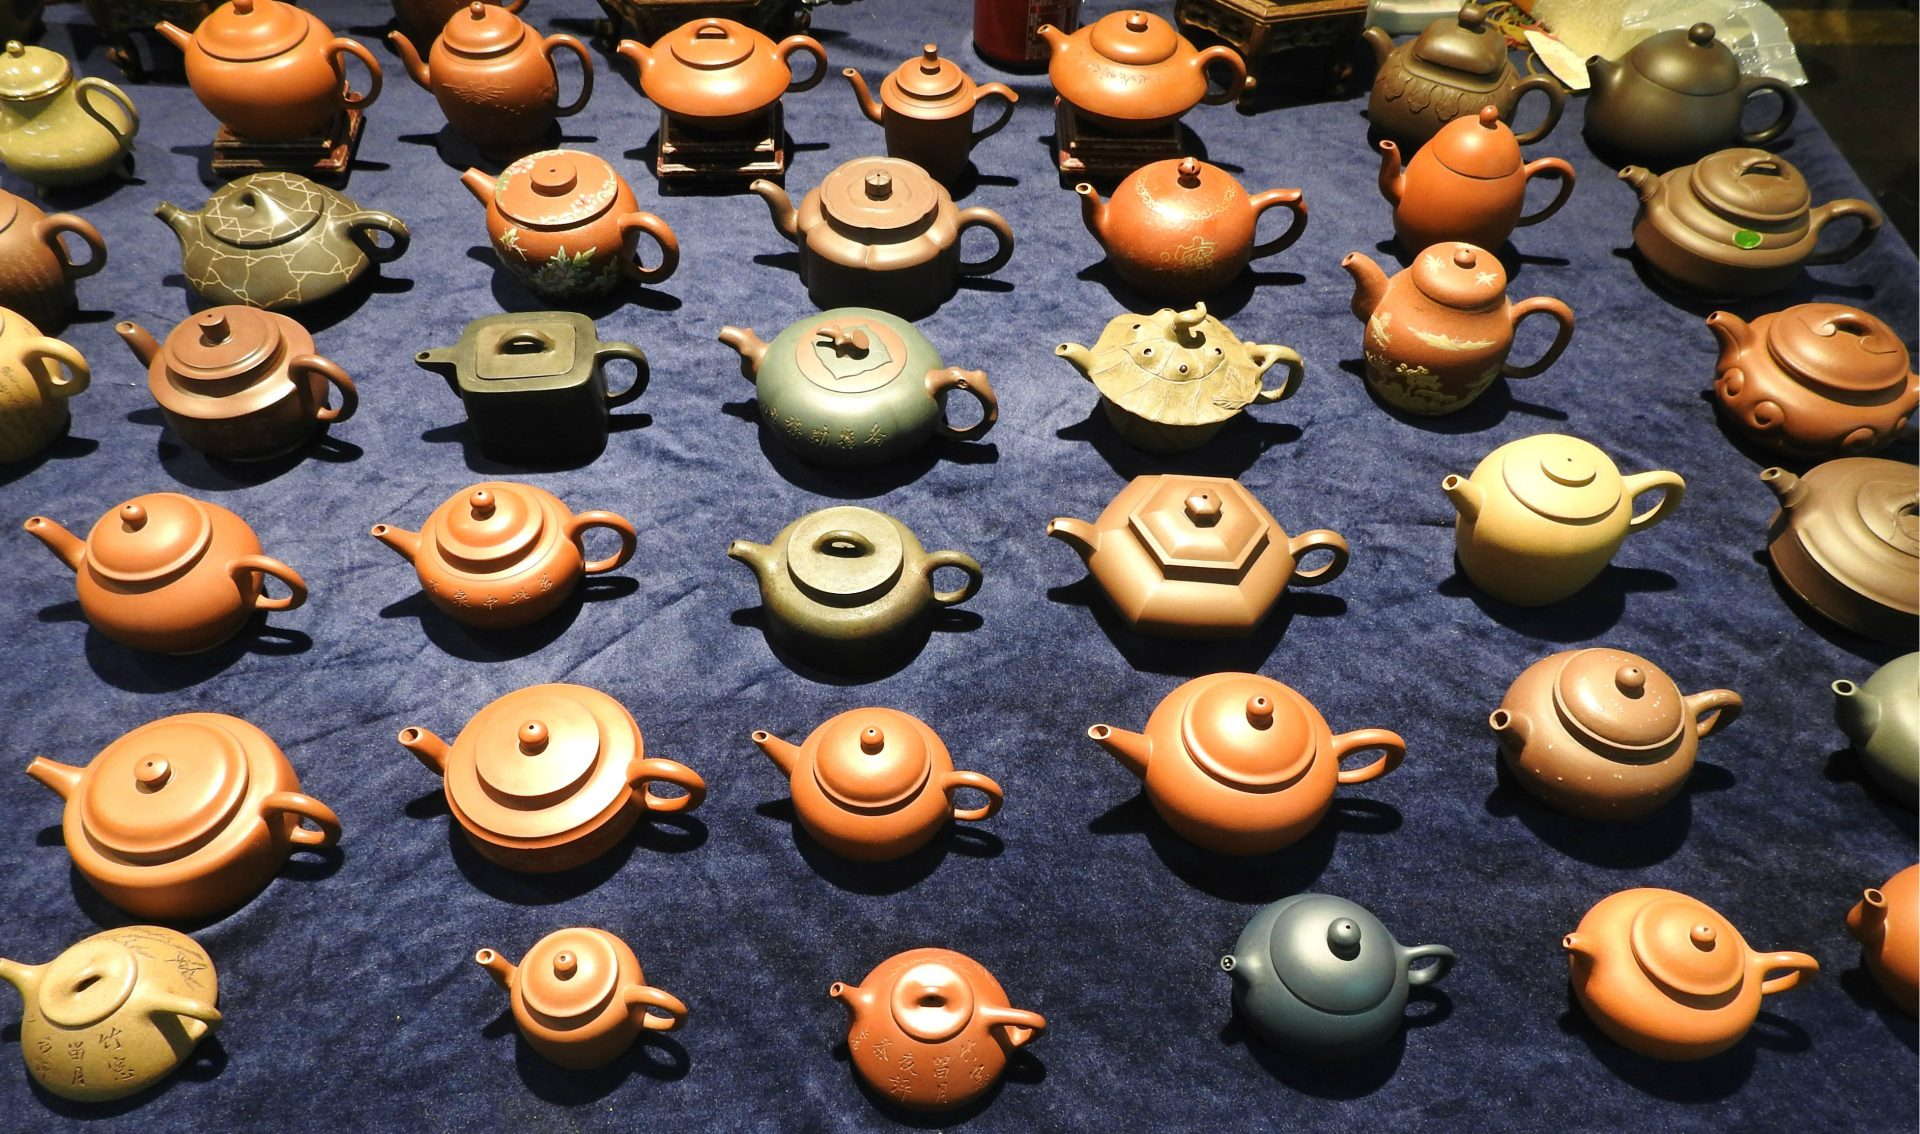 A variety of teapots can also be found at Taipei Jianguo Holiday Jade Market. (Image: Billy Shyu/ Vision Times)